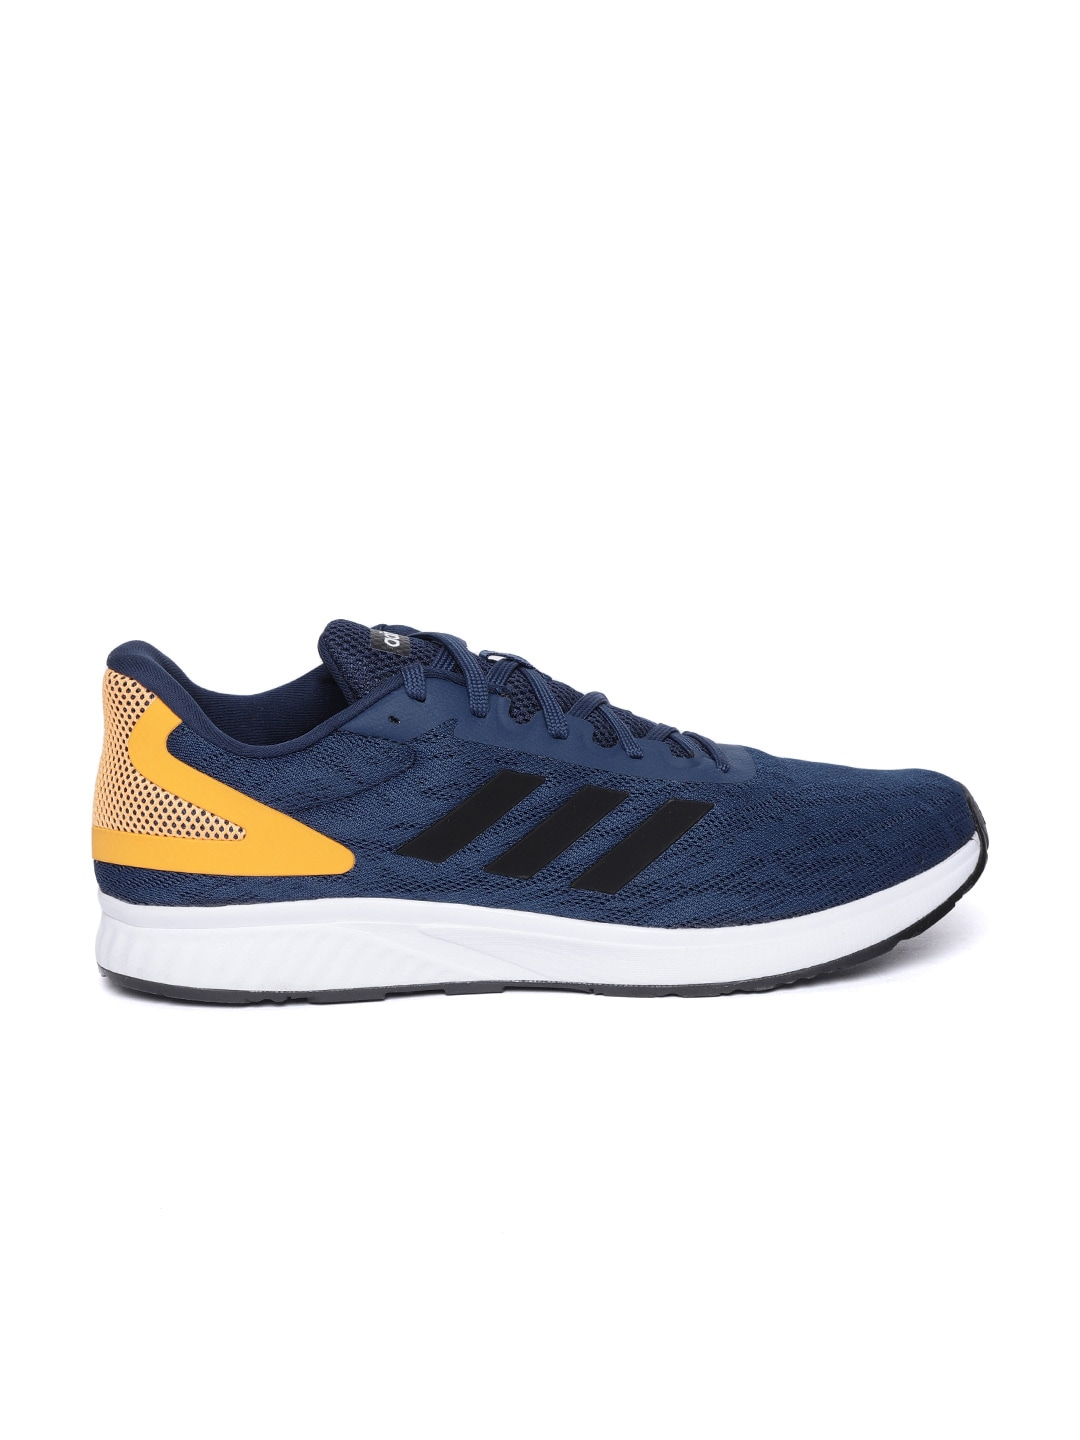 a0e81d16ba6 Adidas Shoes - Buy Adidas Shoes for Men   Women Online - Myntra